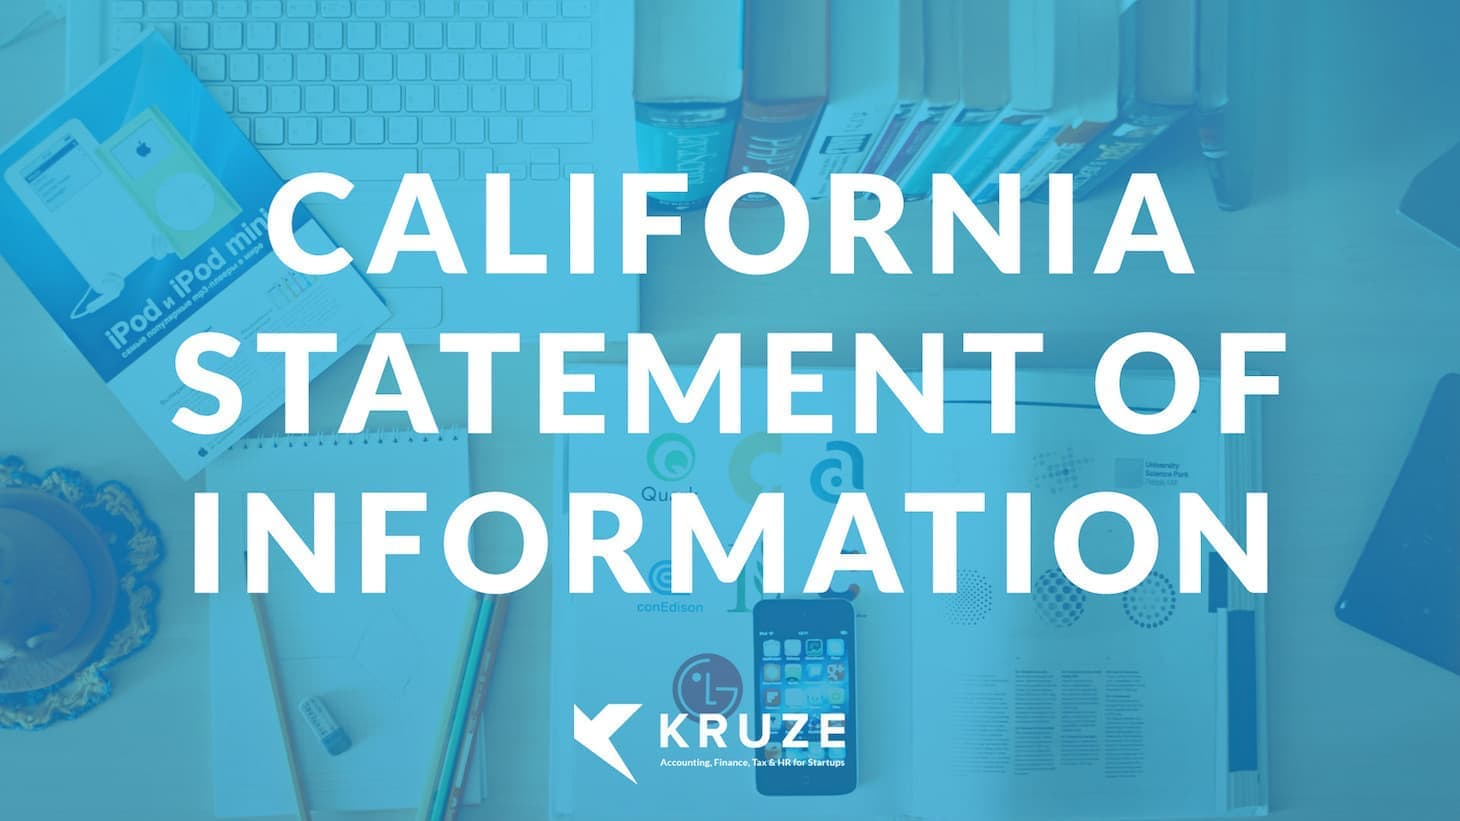 California Statement of Information